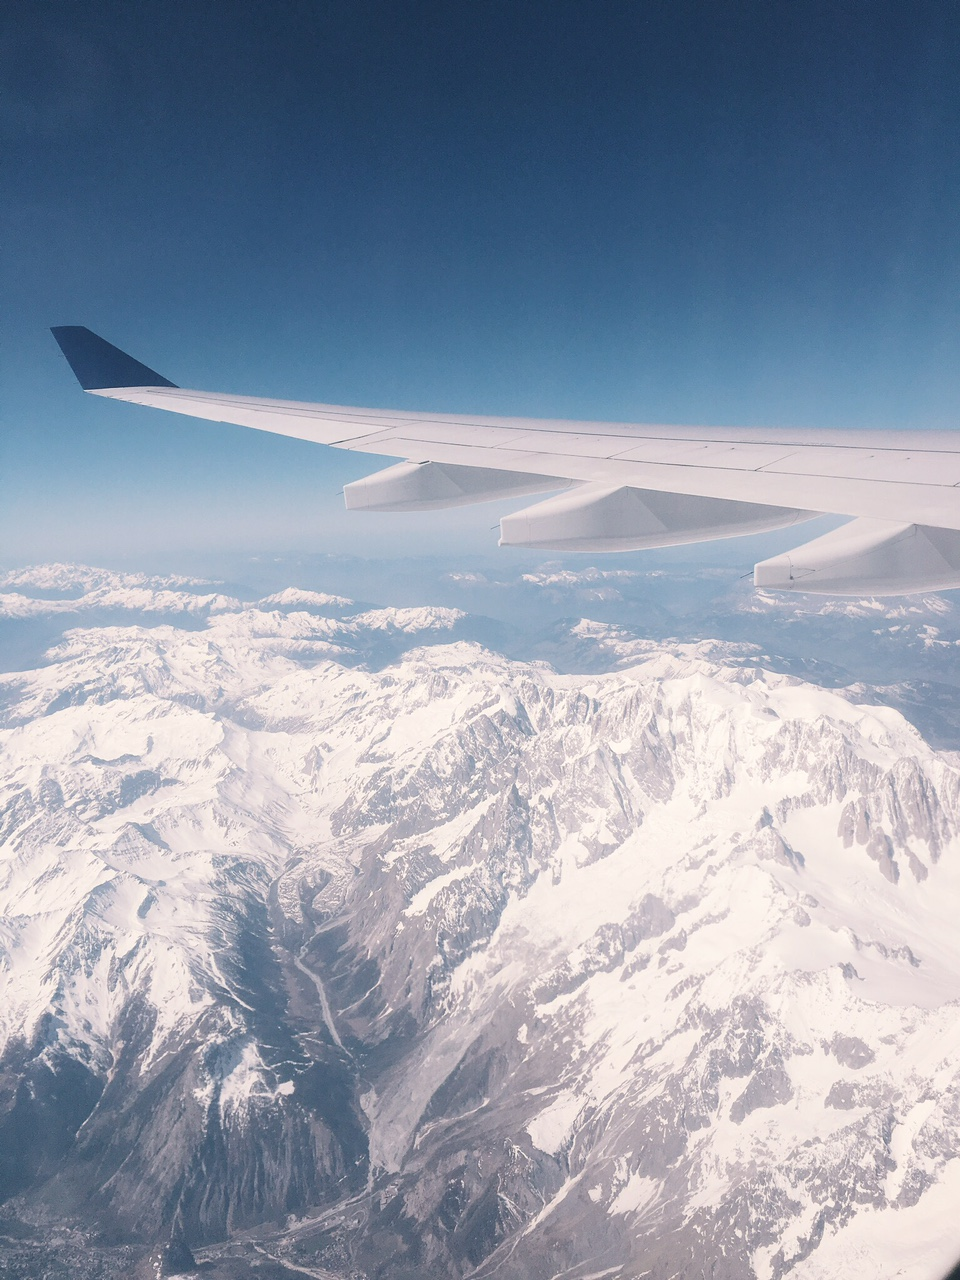 View of Swiss Alps from plane flying from Milan to New York